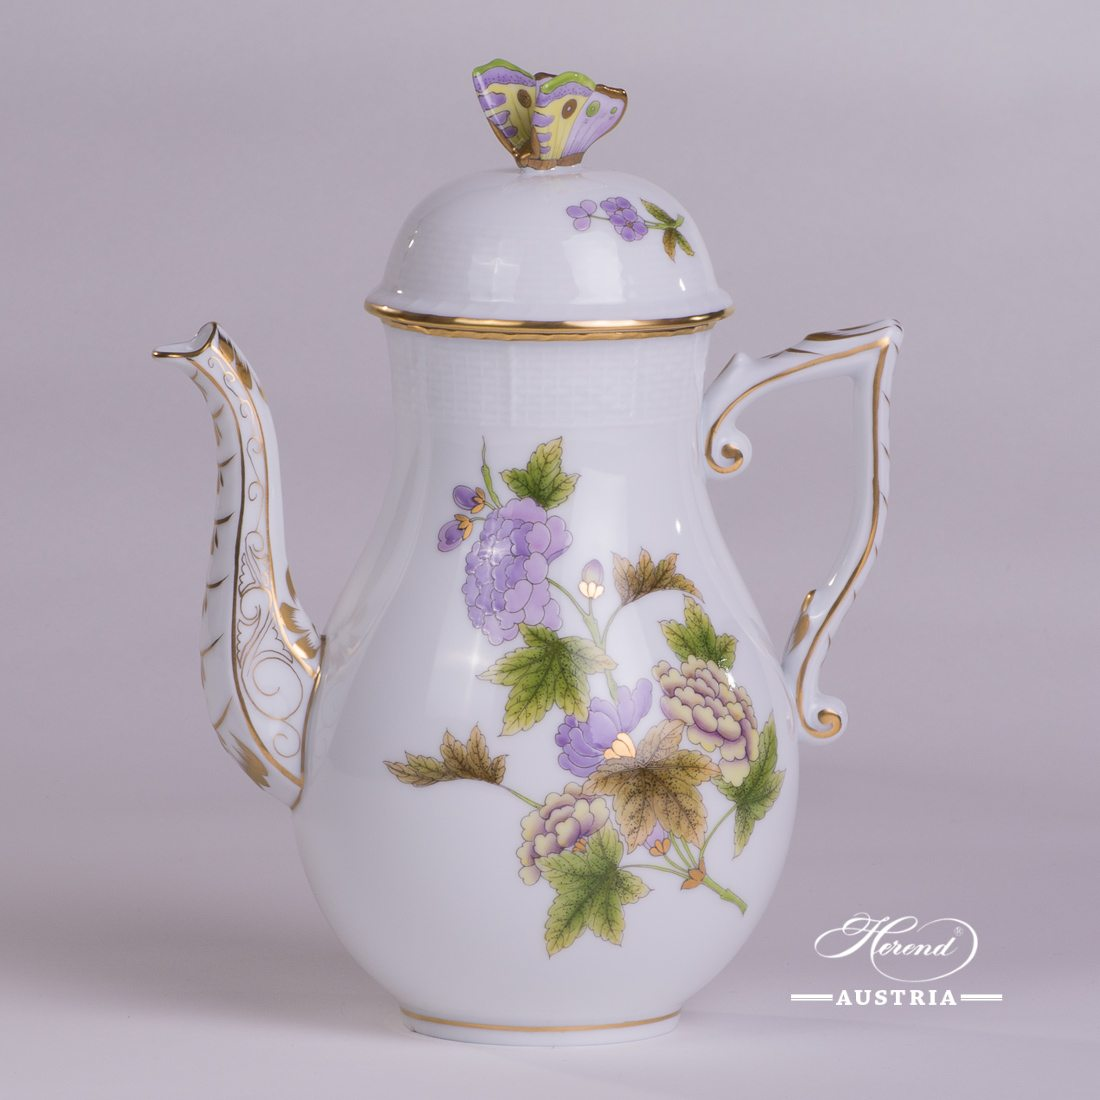 Royal Garden Coffee Pot - 613-0-17 EVICTF1 - Herend Porcelain